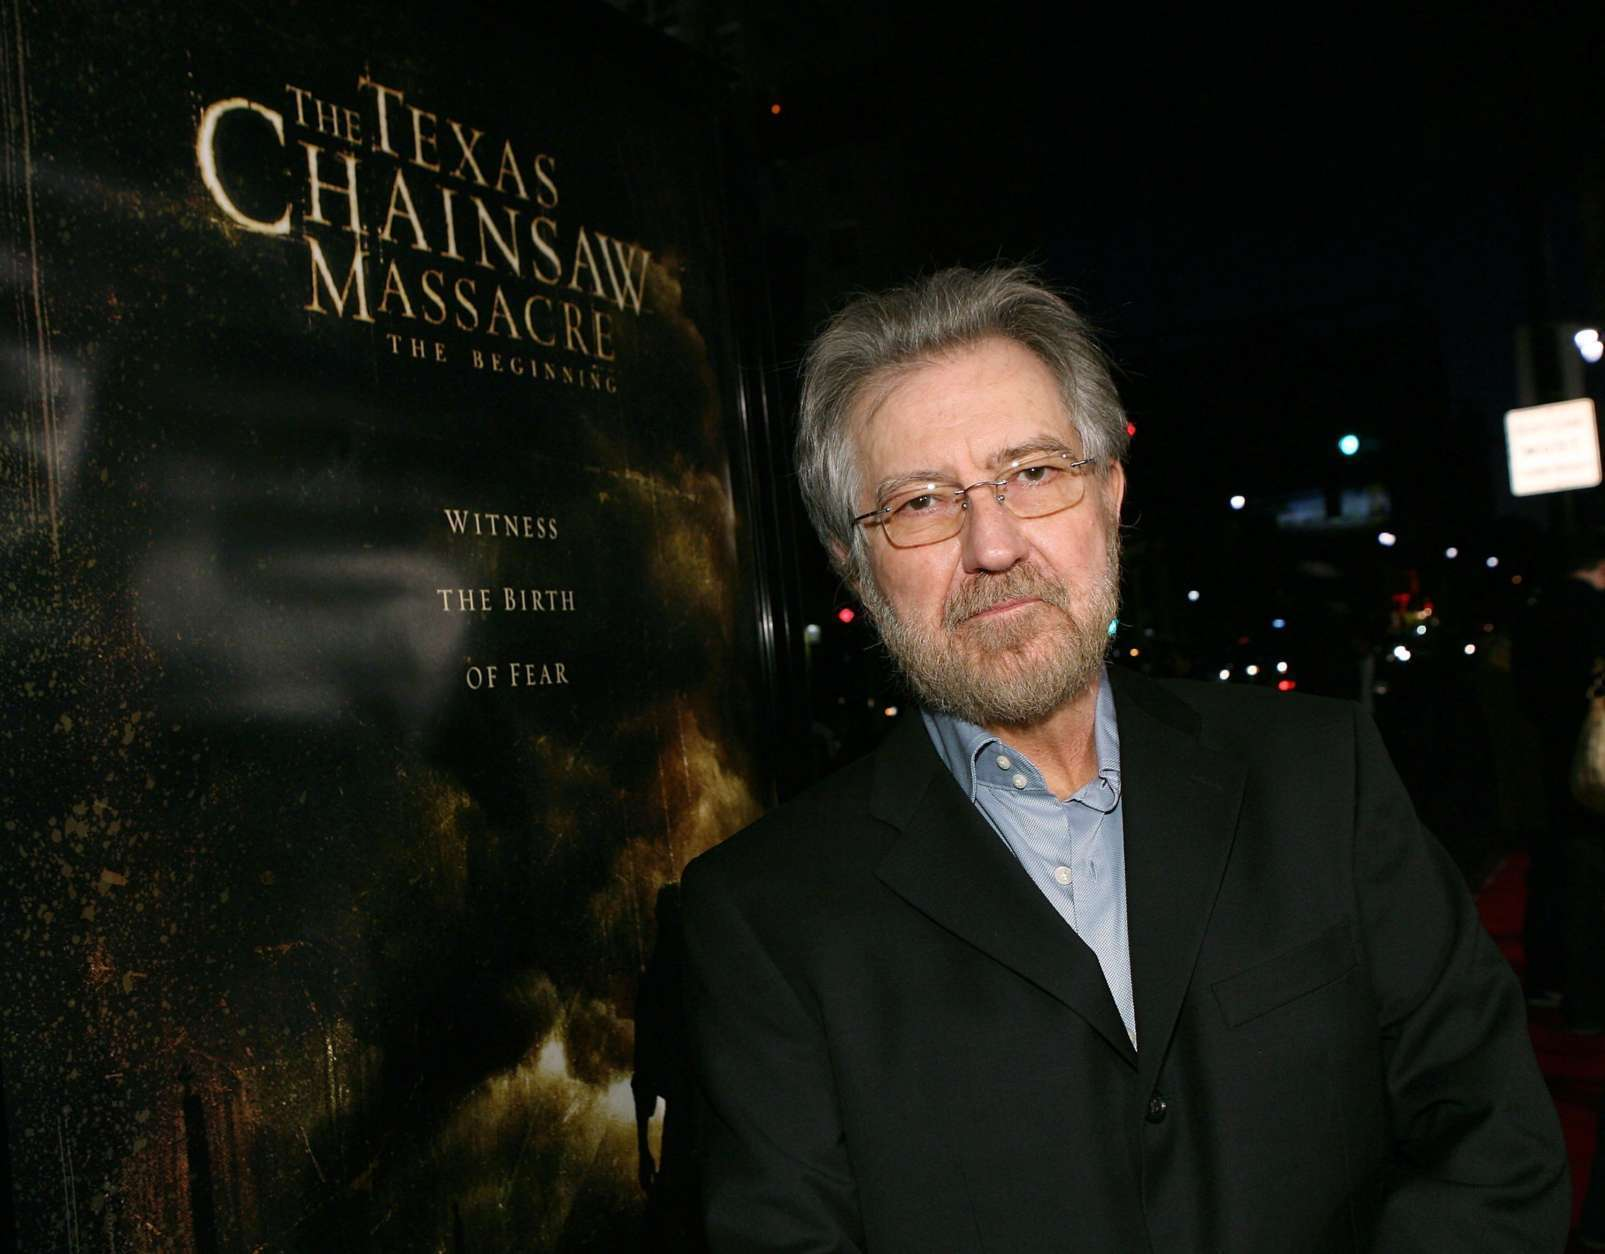 """LOS ANGELES, CA - OCTOBER 05:  Producer Tobe Hooper arrives at the premiere of New Line's """"Texas Chainsaw Massacre: The Beginning"""" at Grauman's Chinese Theatre on October 5, 2006 in Los Angeles, California. Hooper <a href=""""http://wtop.com/movies/2017/08/tobe-hooper-master-of-horror-behind-the-texas-chain-saw-massacre-dies-at-74/"""" target=""""_blank>died Aug. 27. </a> (Photo by Michael Buckner/Getty Images)"""